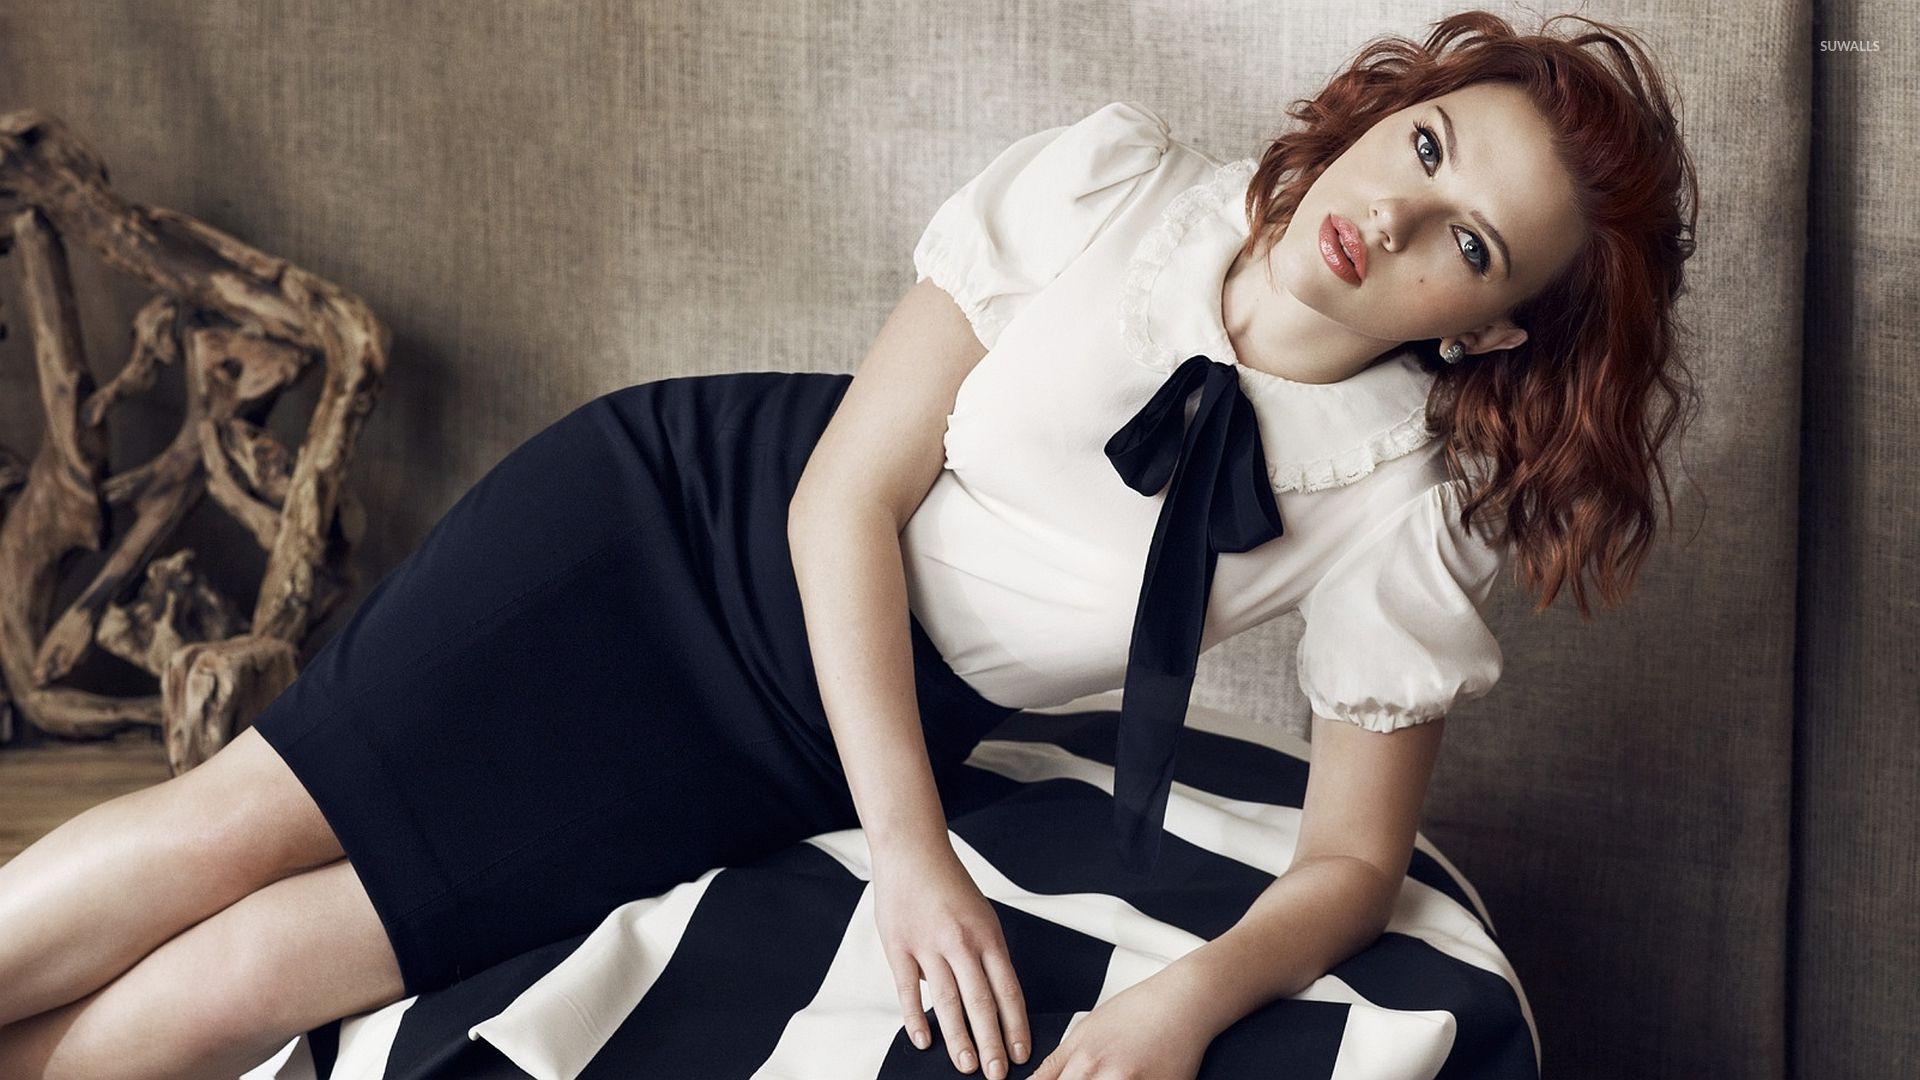 blue white striped scarlett johansson